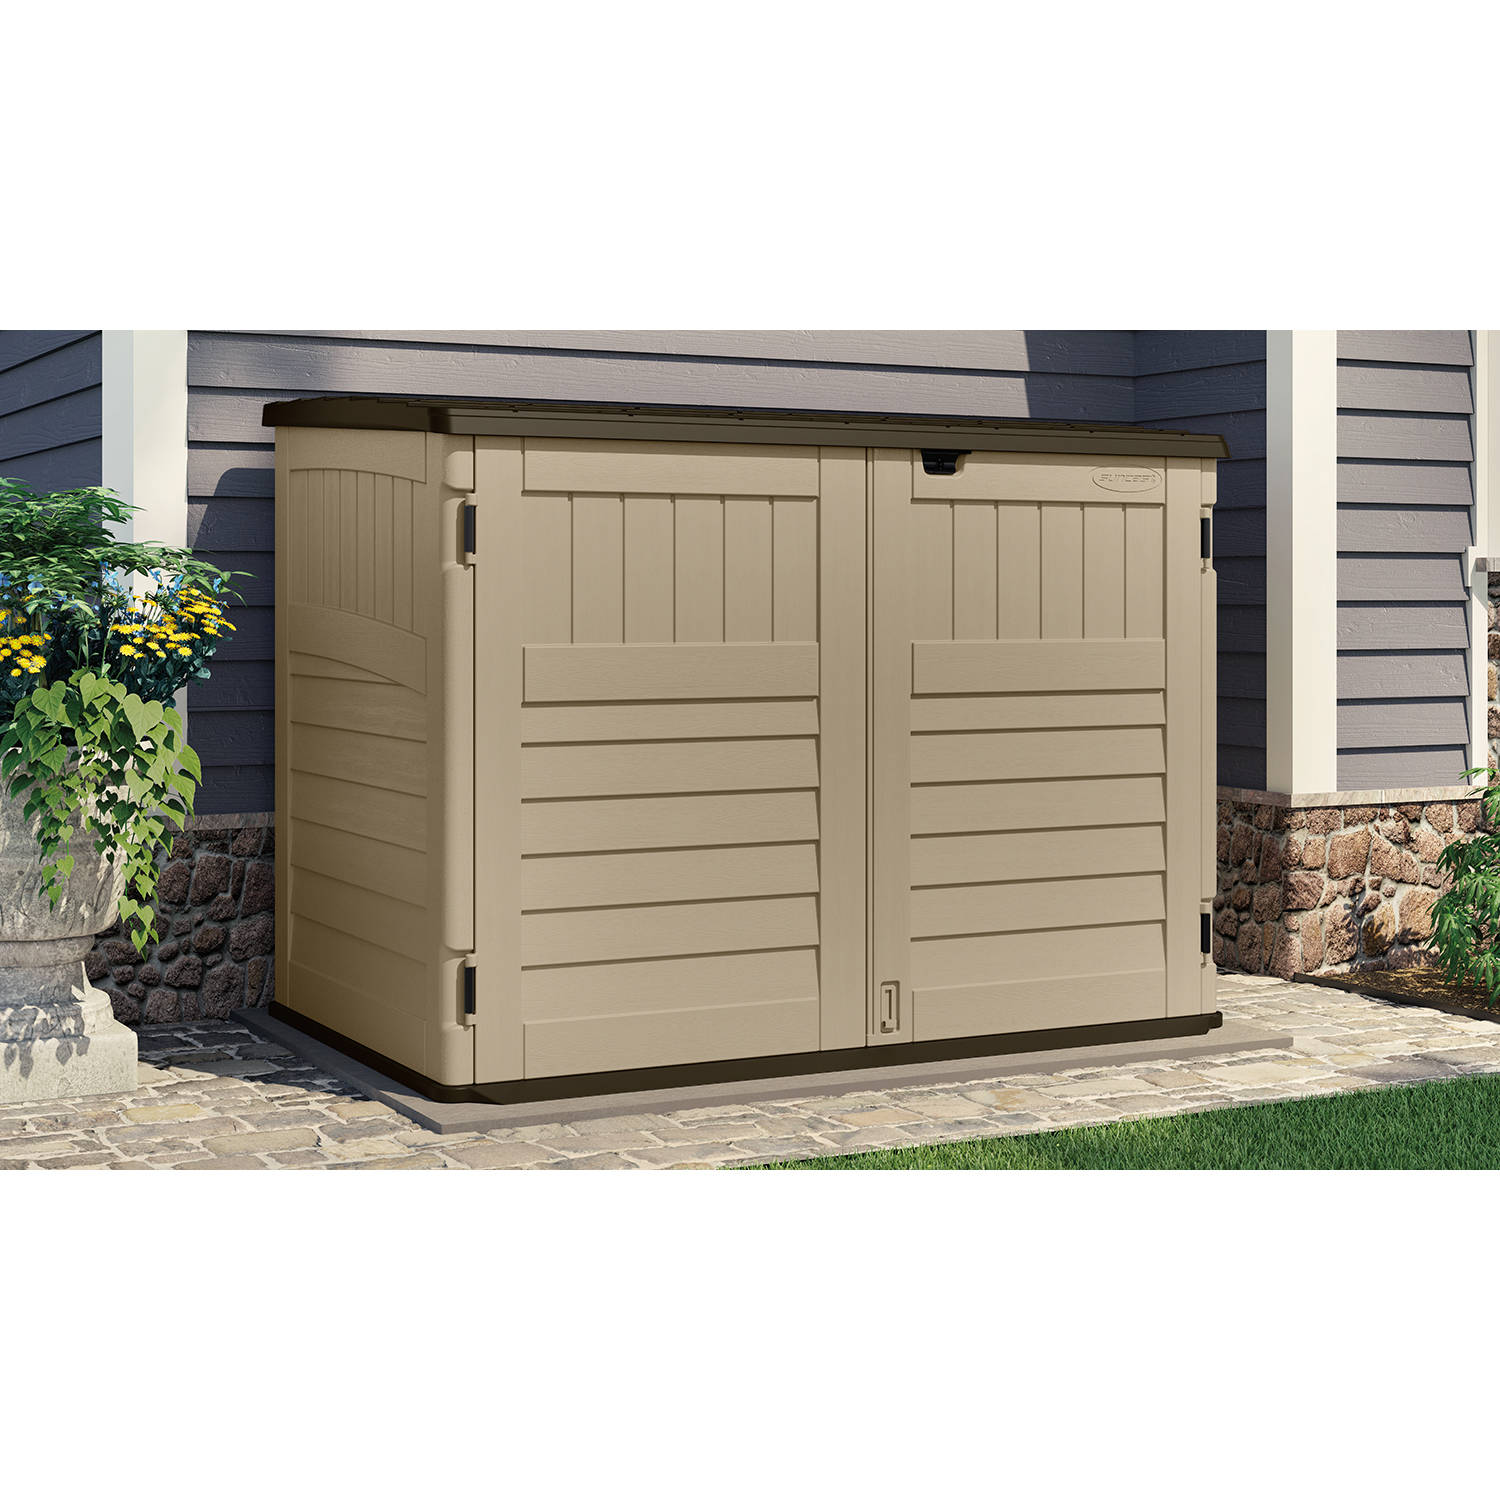 Suncast Toter Trash Can Shed Sand